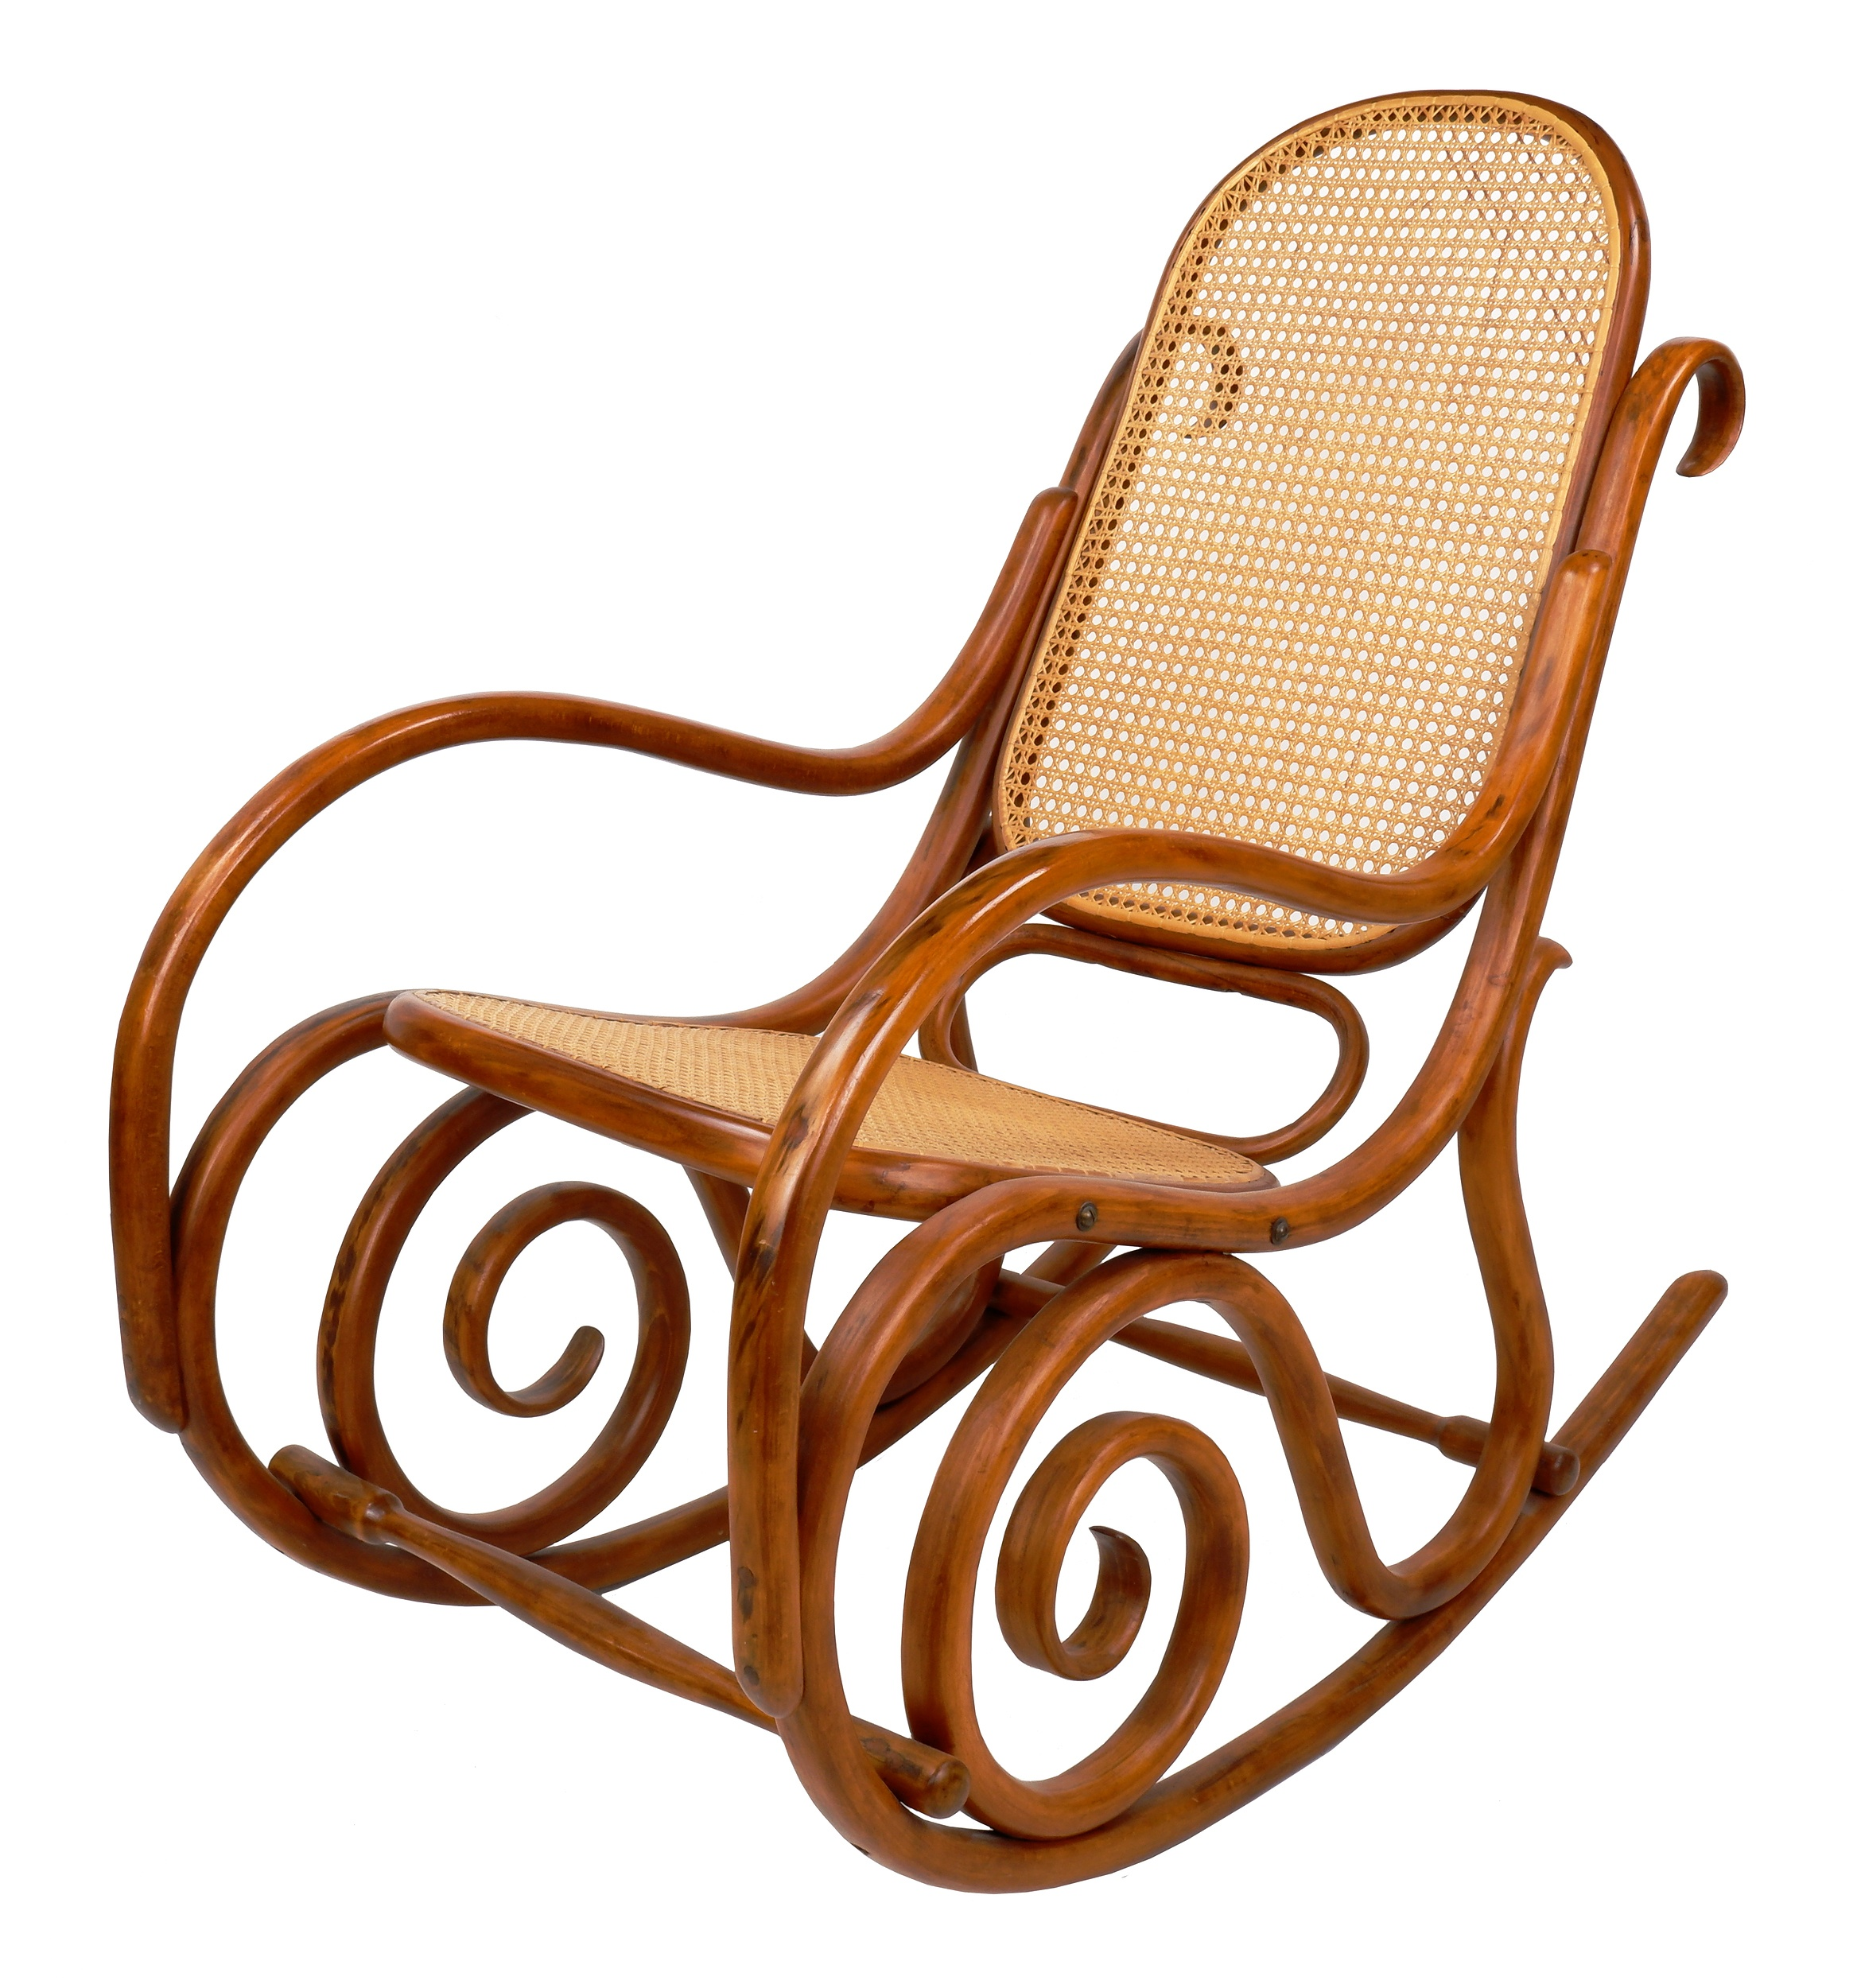 'Antique Bentwood Rocking Chair with Rattan Seat and Back, Early 20th Century'